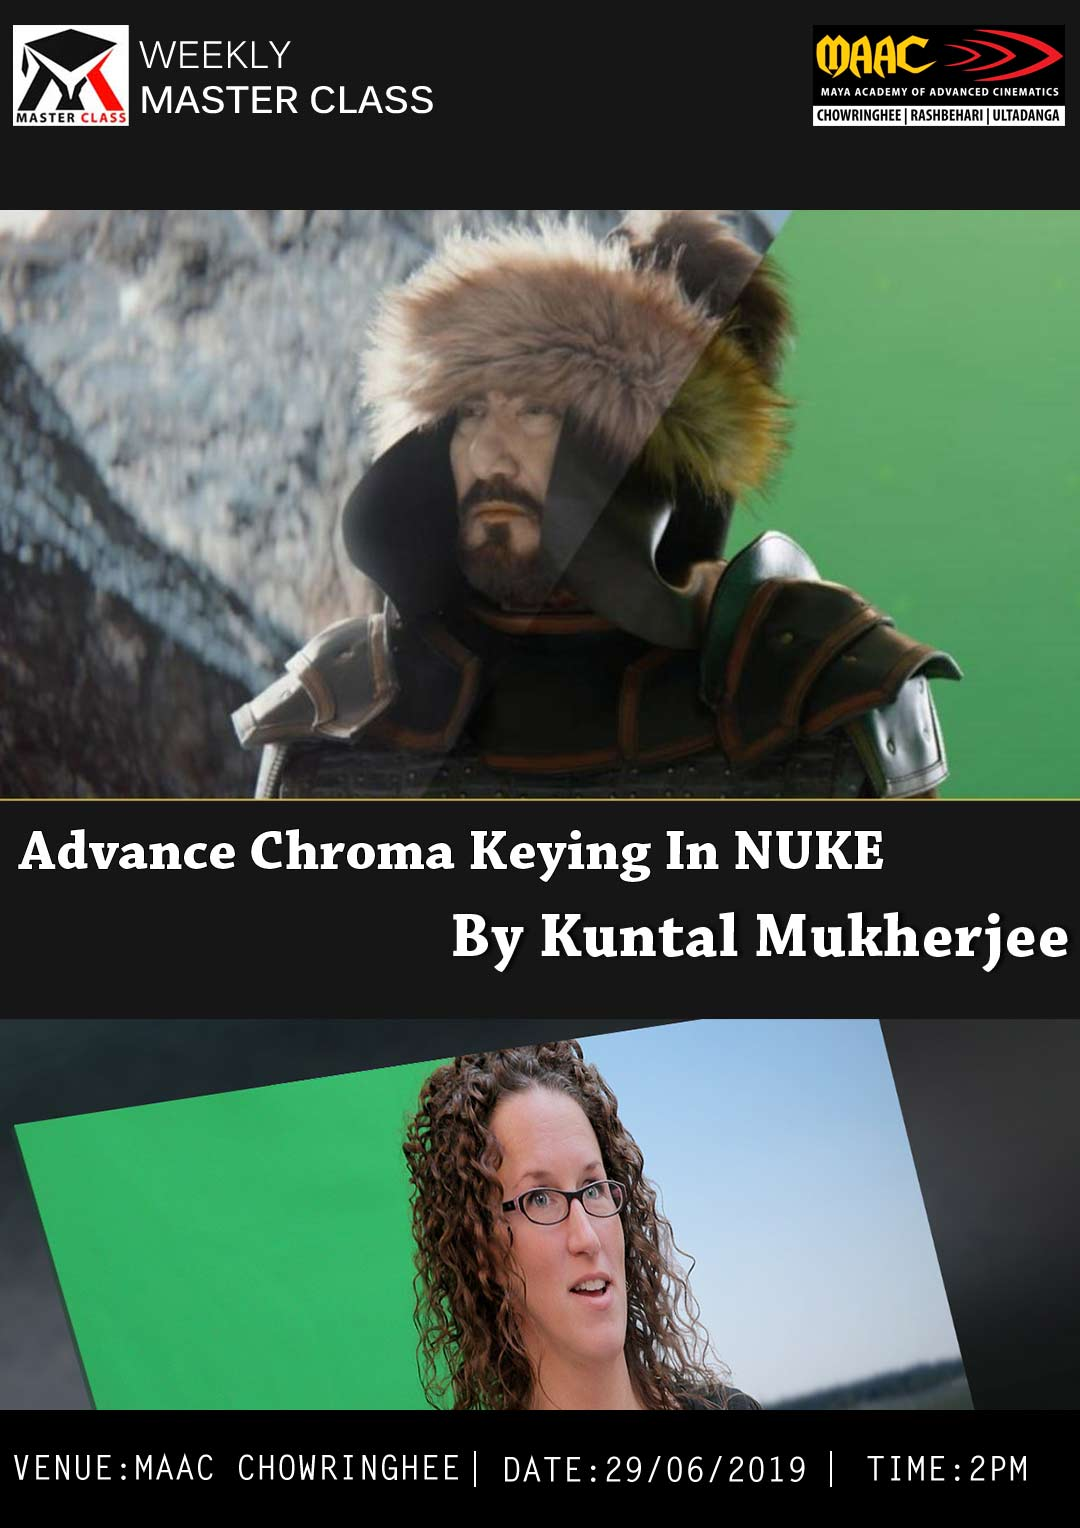 Weekly Master Class on Advance Chroma Keying in Nuke